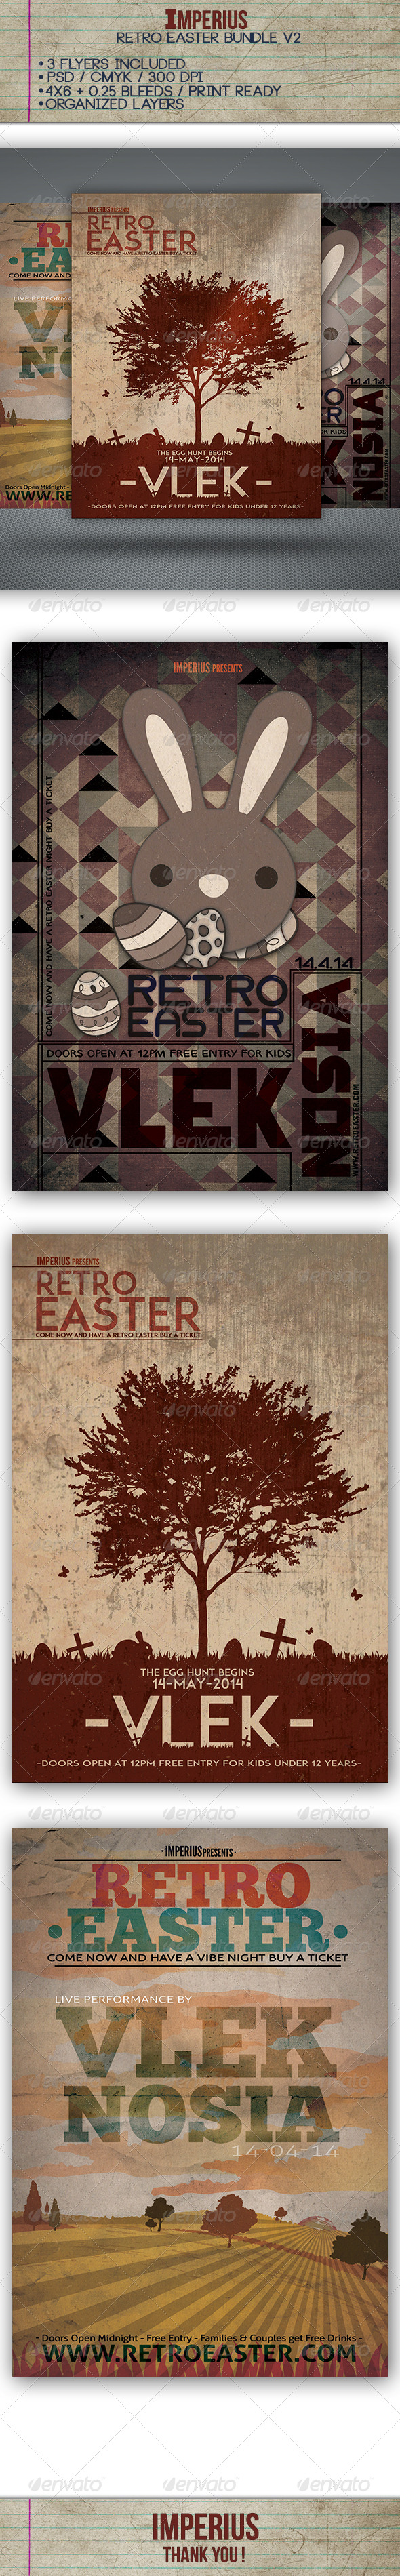 Retro Easter Bundle V2